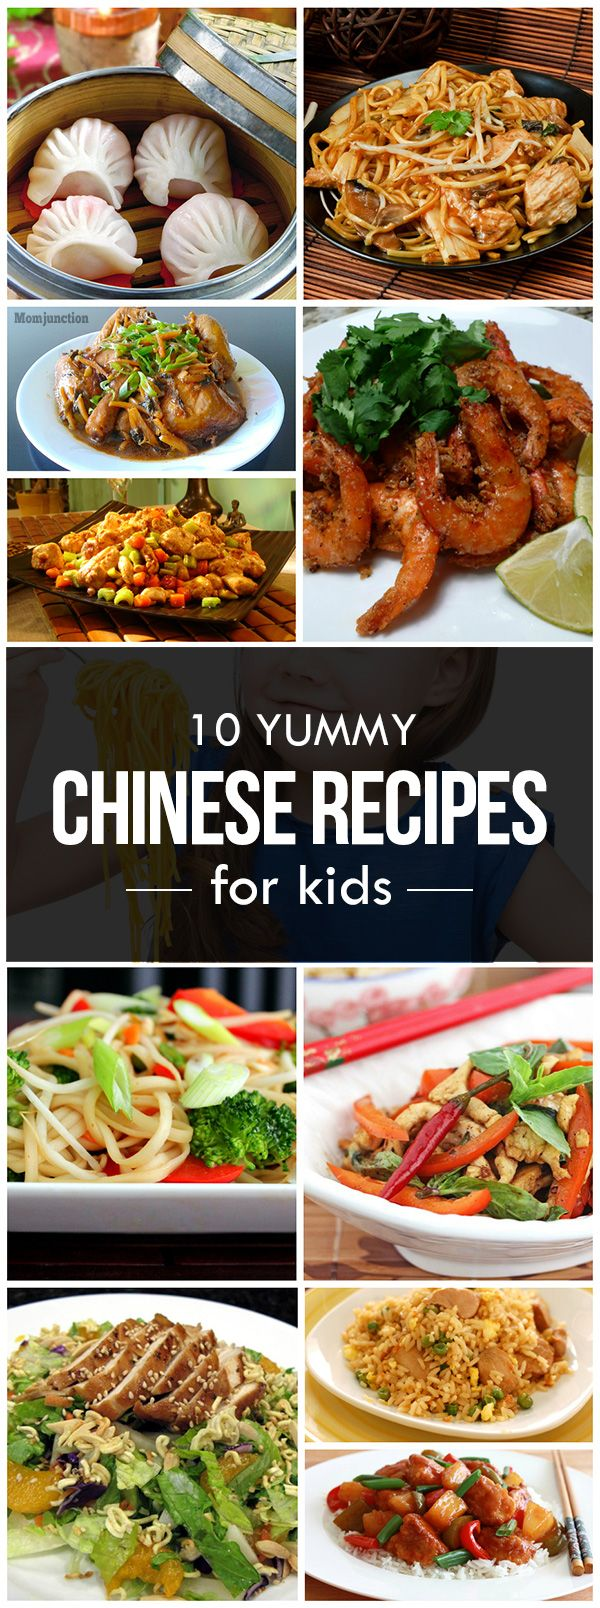 10 Yummy Chinese Recipes For Kids: Today we have come up with ten delicious Chinese recipes that you can prepare in less than an hour. These recipes will surely make your fussy kid drool!